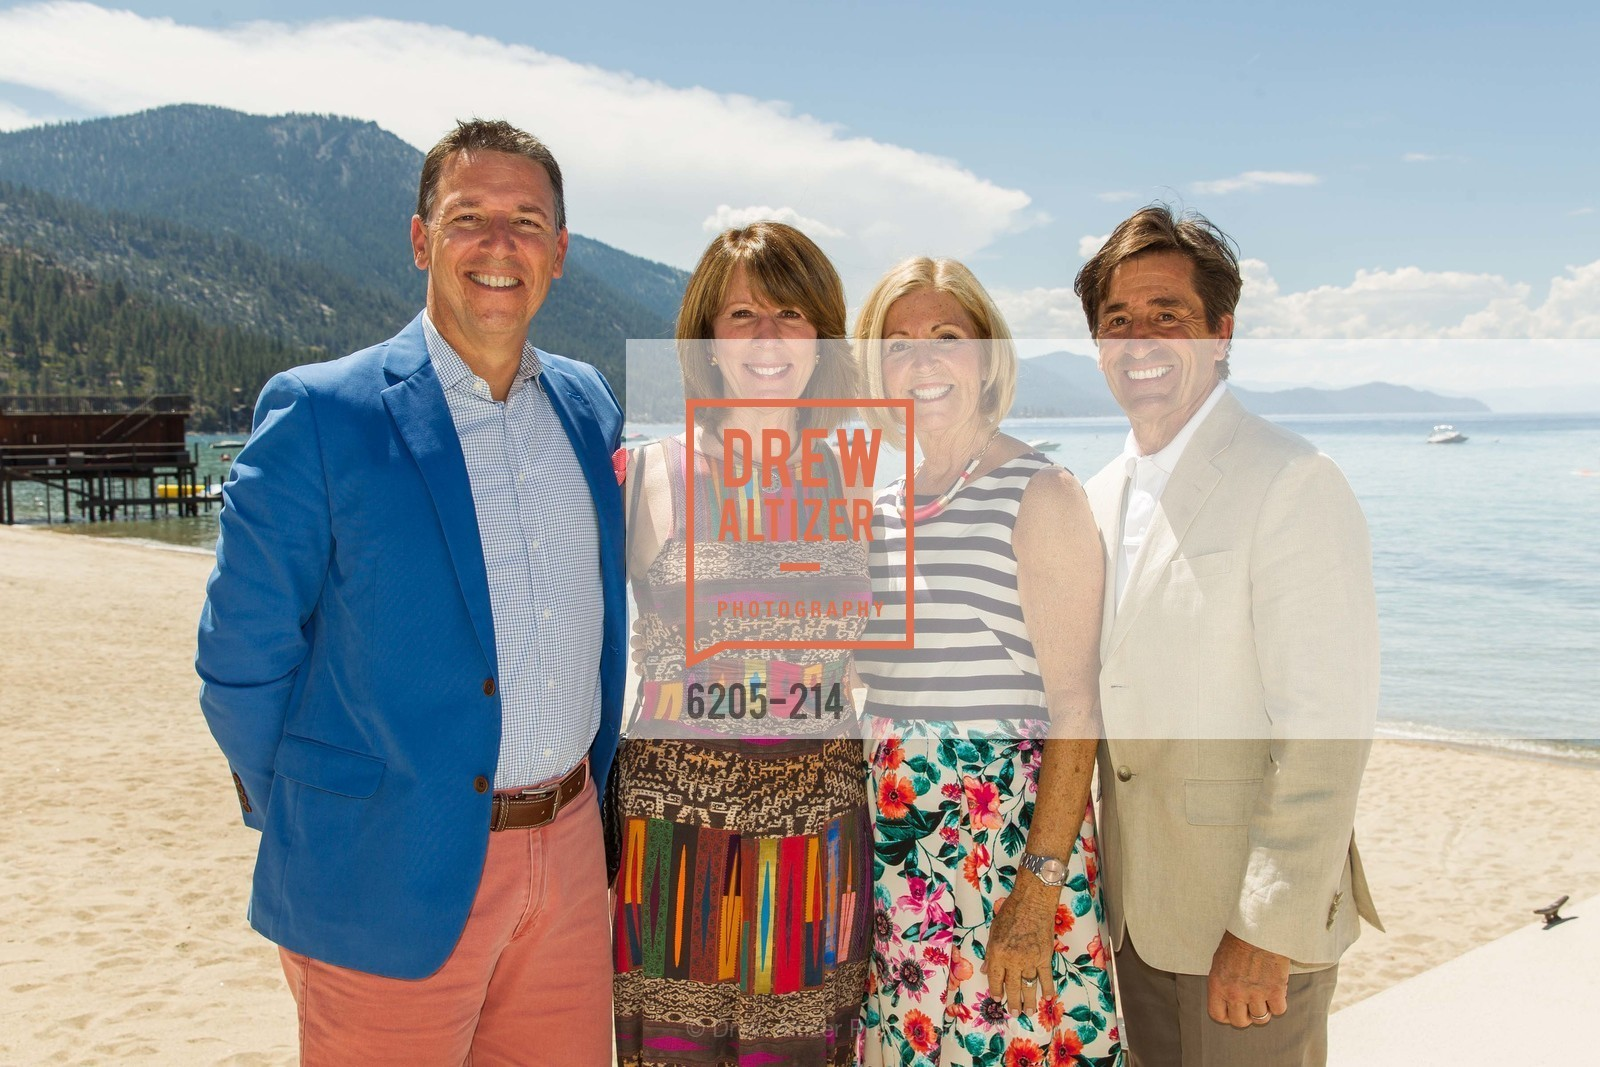 Glenn Bunting, Nancy Damaschino, Willo Bunting, Bob Damaschino, Saks Fifth Avenue and The League to Save Lake Tahoe Present Fashion on the Lake, Private Residence, August 1st, 2015,Drew Altizer, Drew Altizer Photography, full-service agency, private events, San Francisco photographer, photographer california